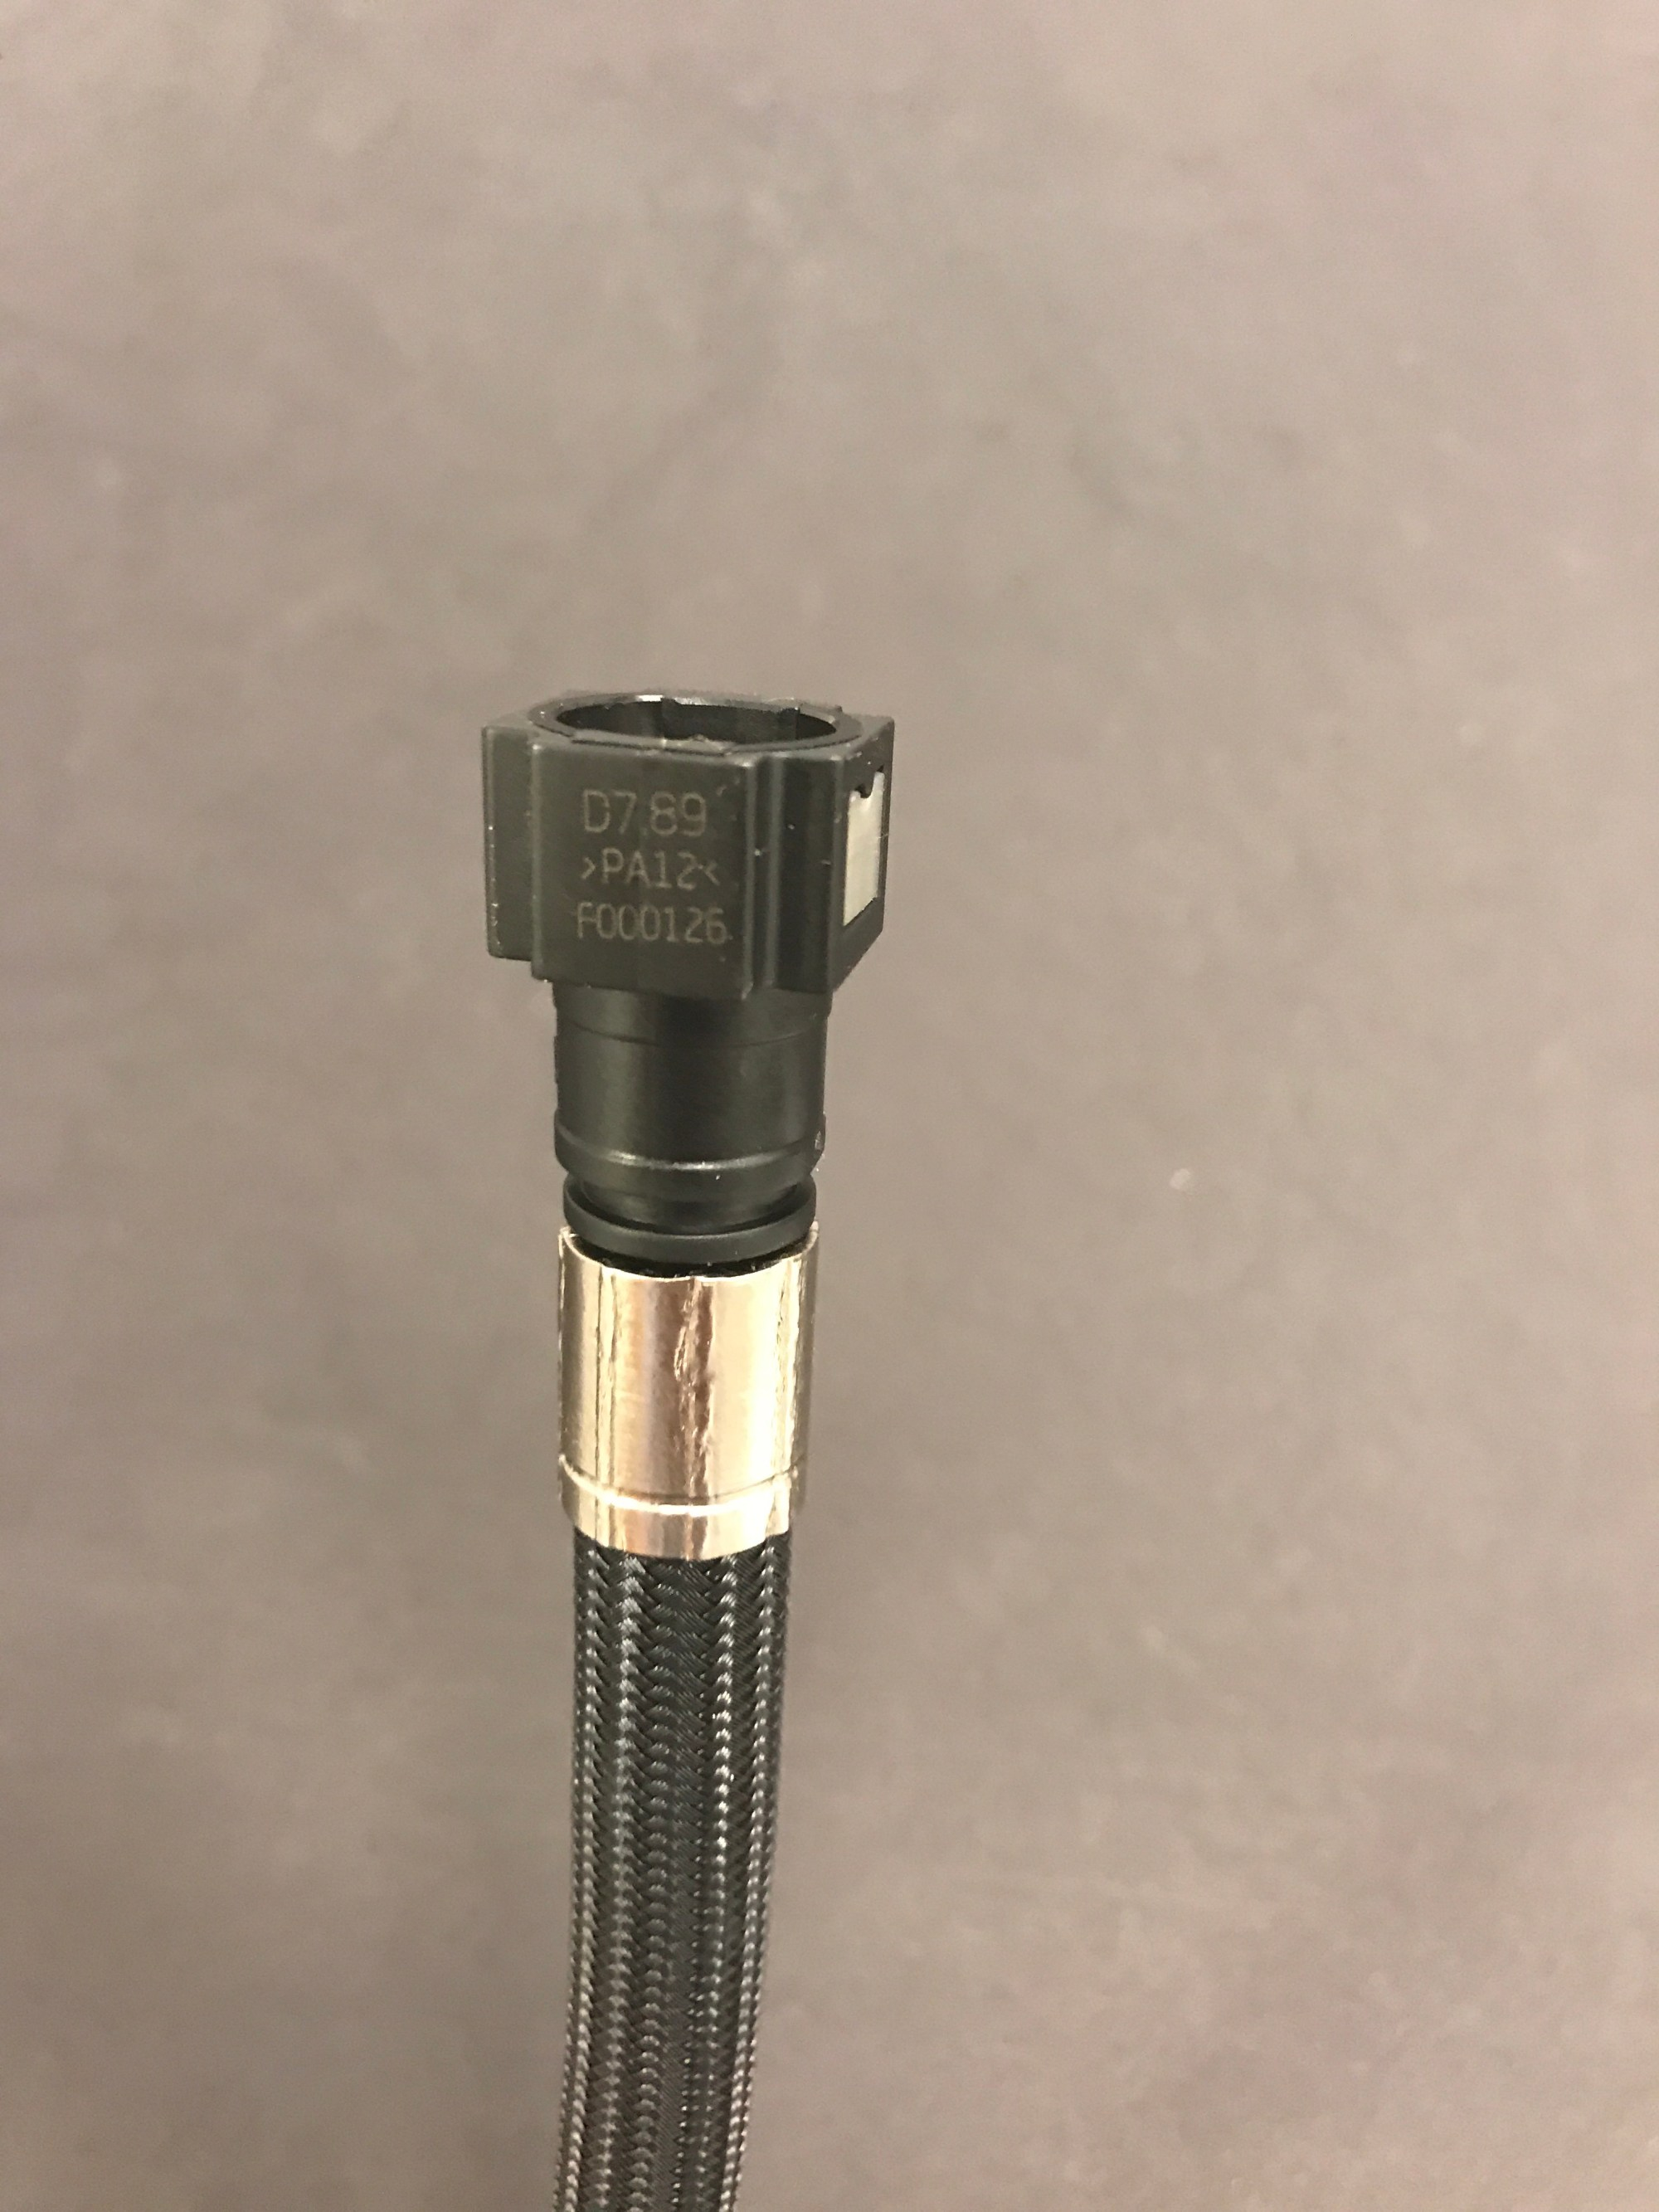 hight resolution of fuel injection quick disconnect crimp fittings with super nickel collars for proplus ptfe race hose convolutions xrp inc